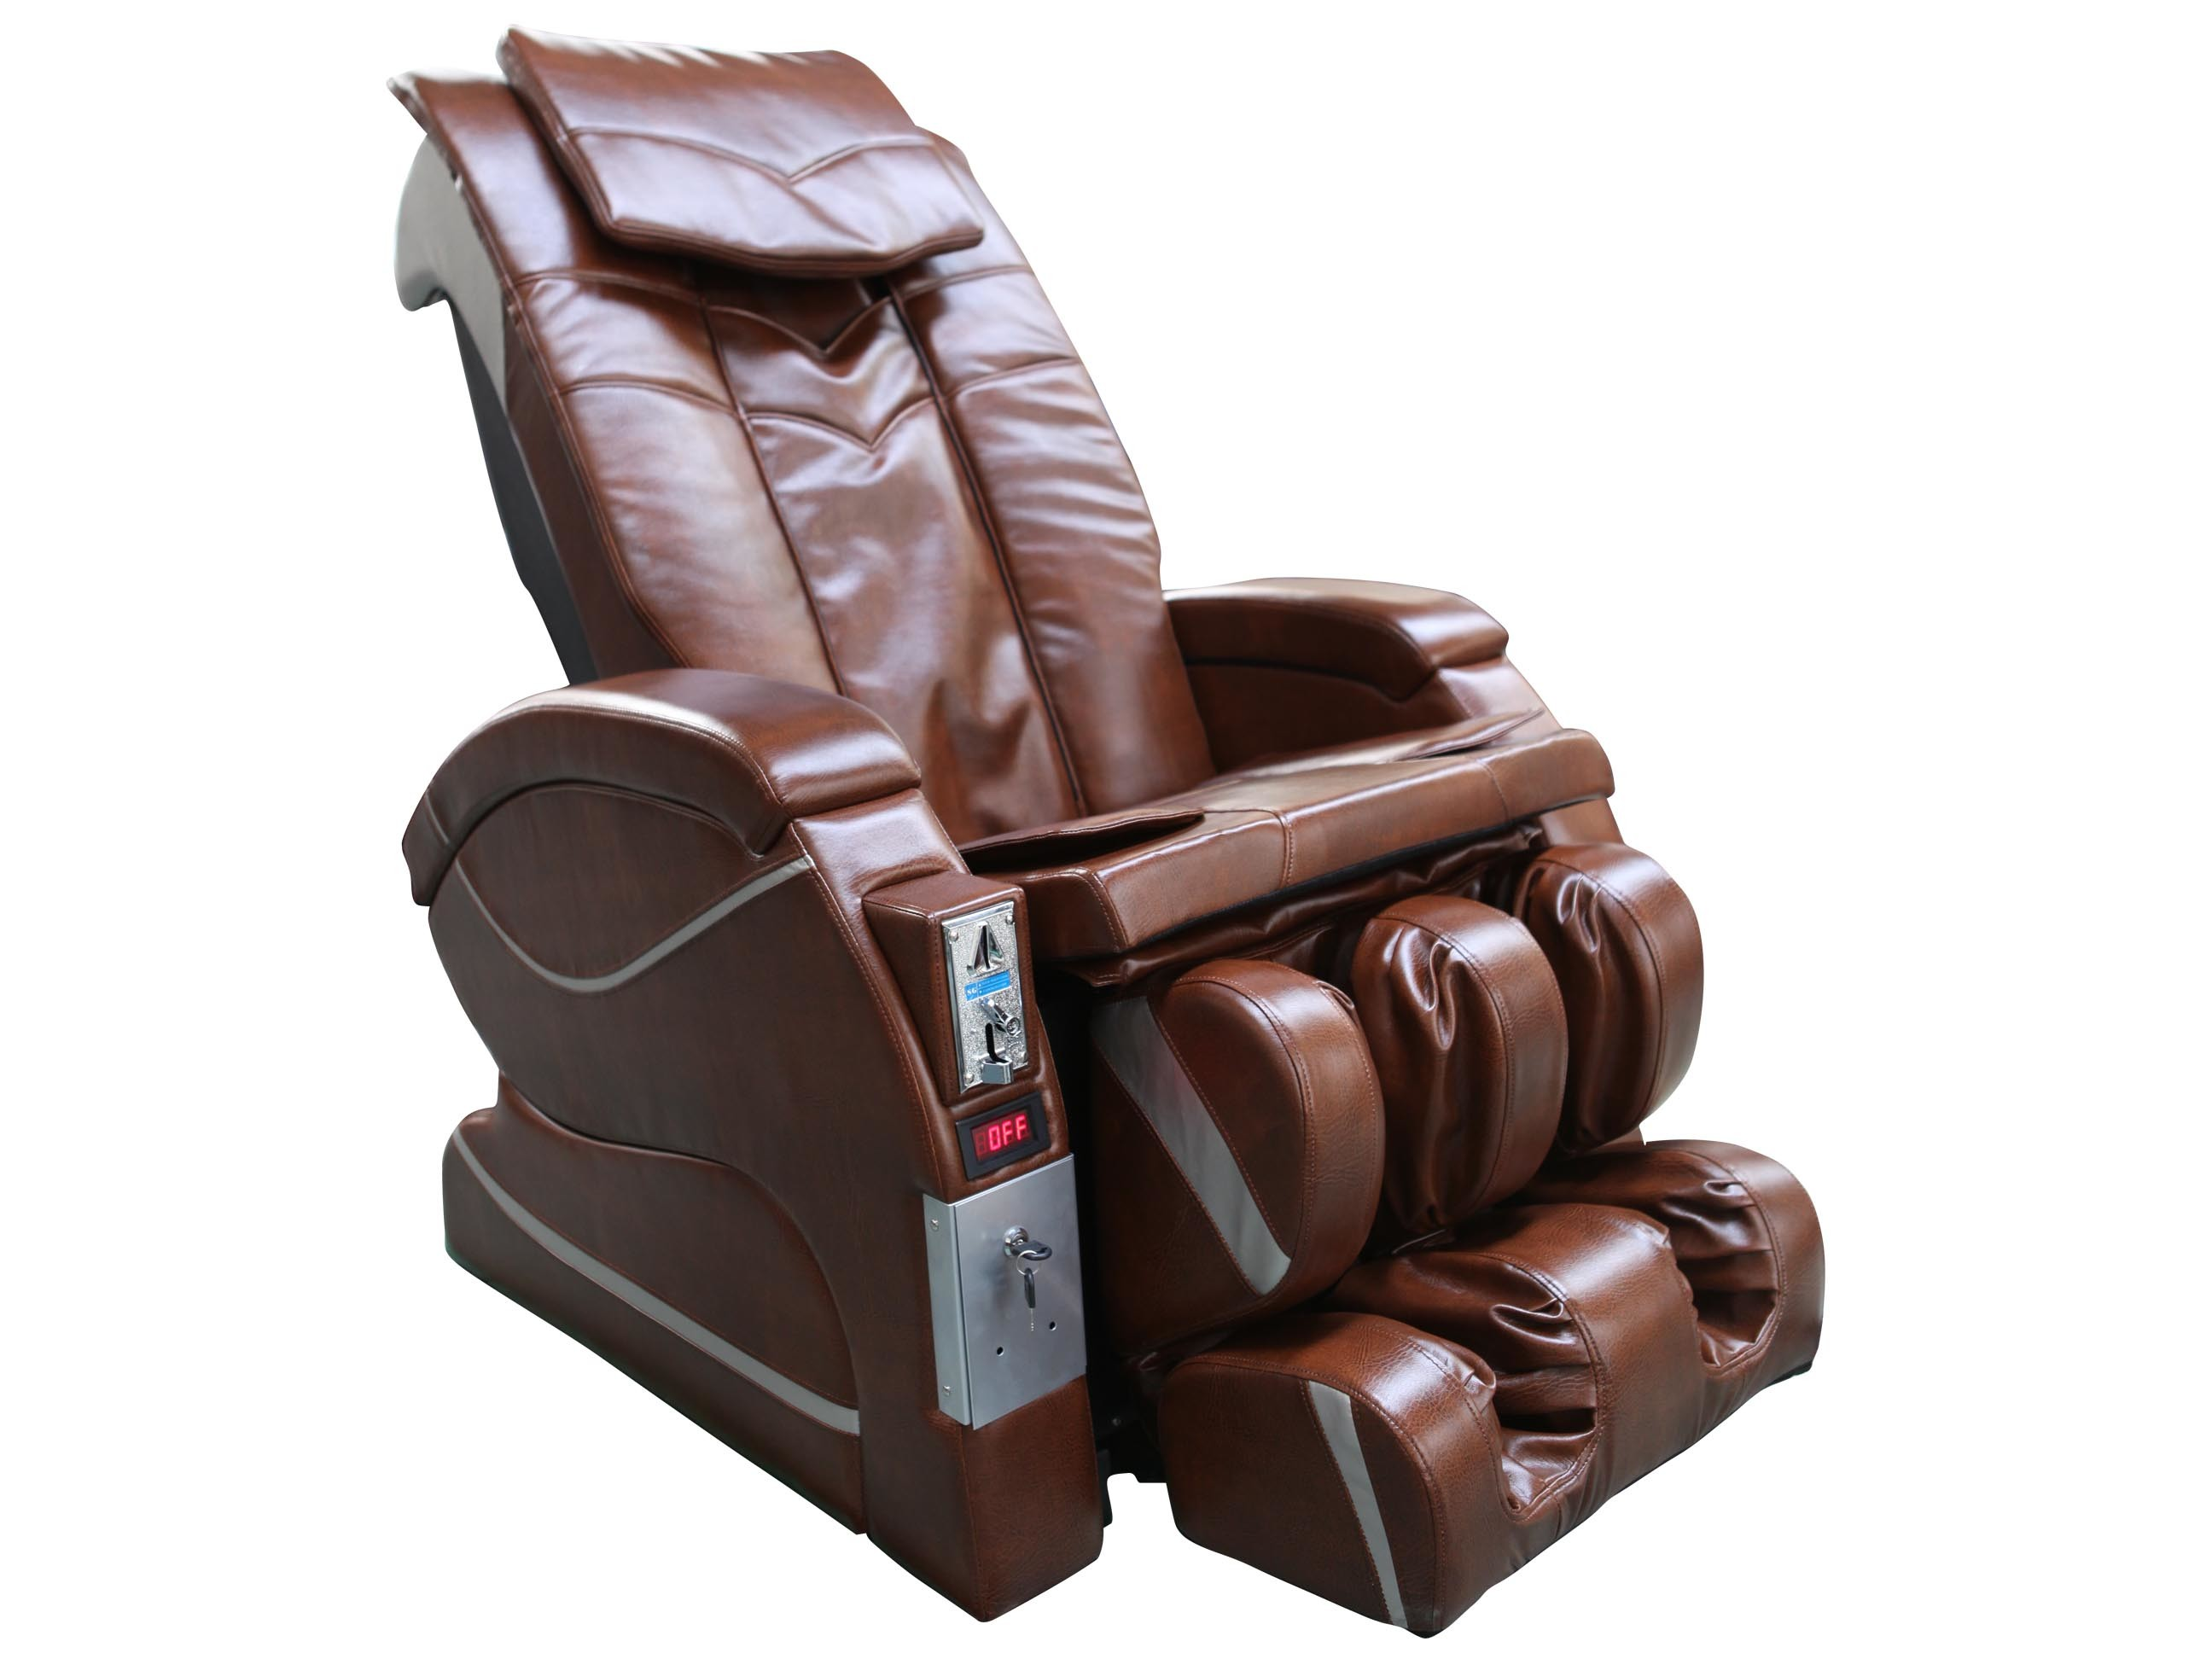 Brown Leisure Recliner Chair Ottoman With 8 Motor Massage fice